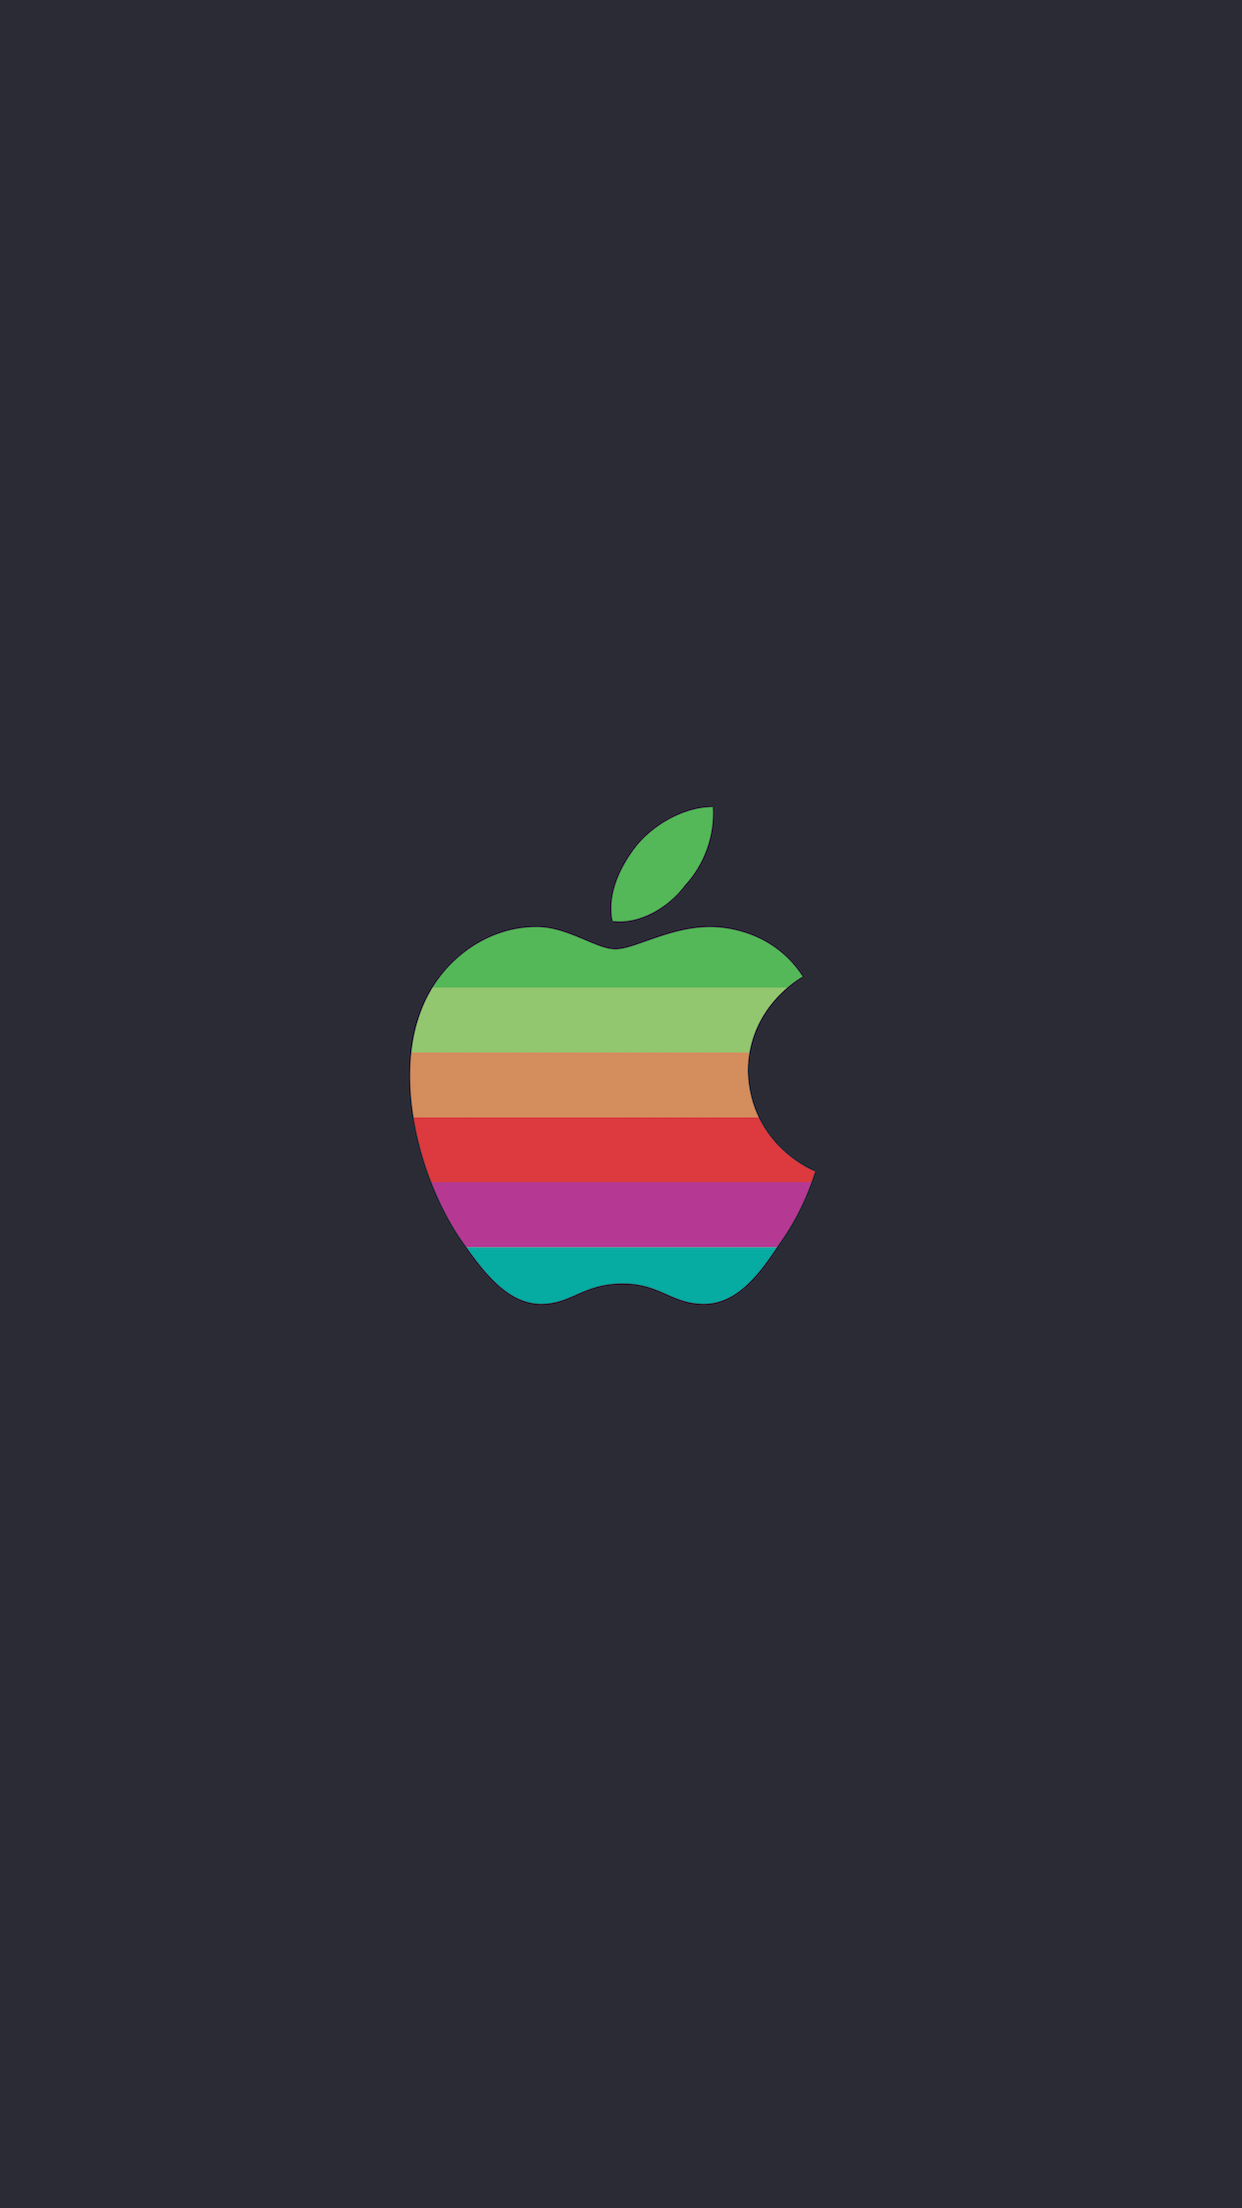 apple iphone wallpapers (4)